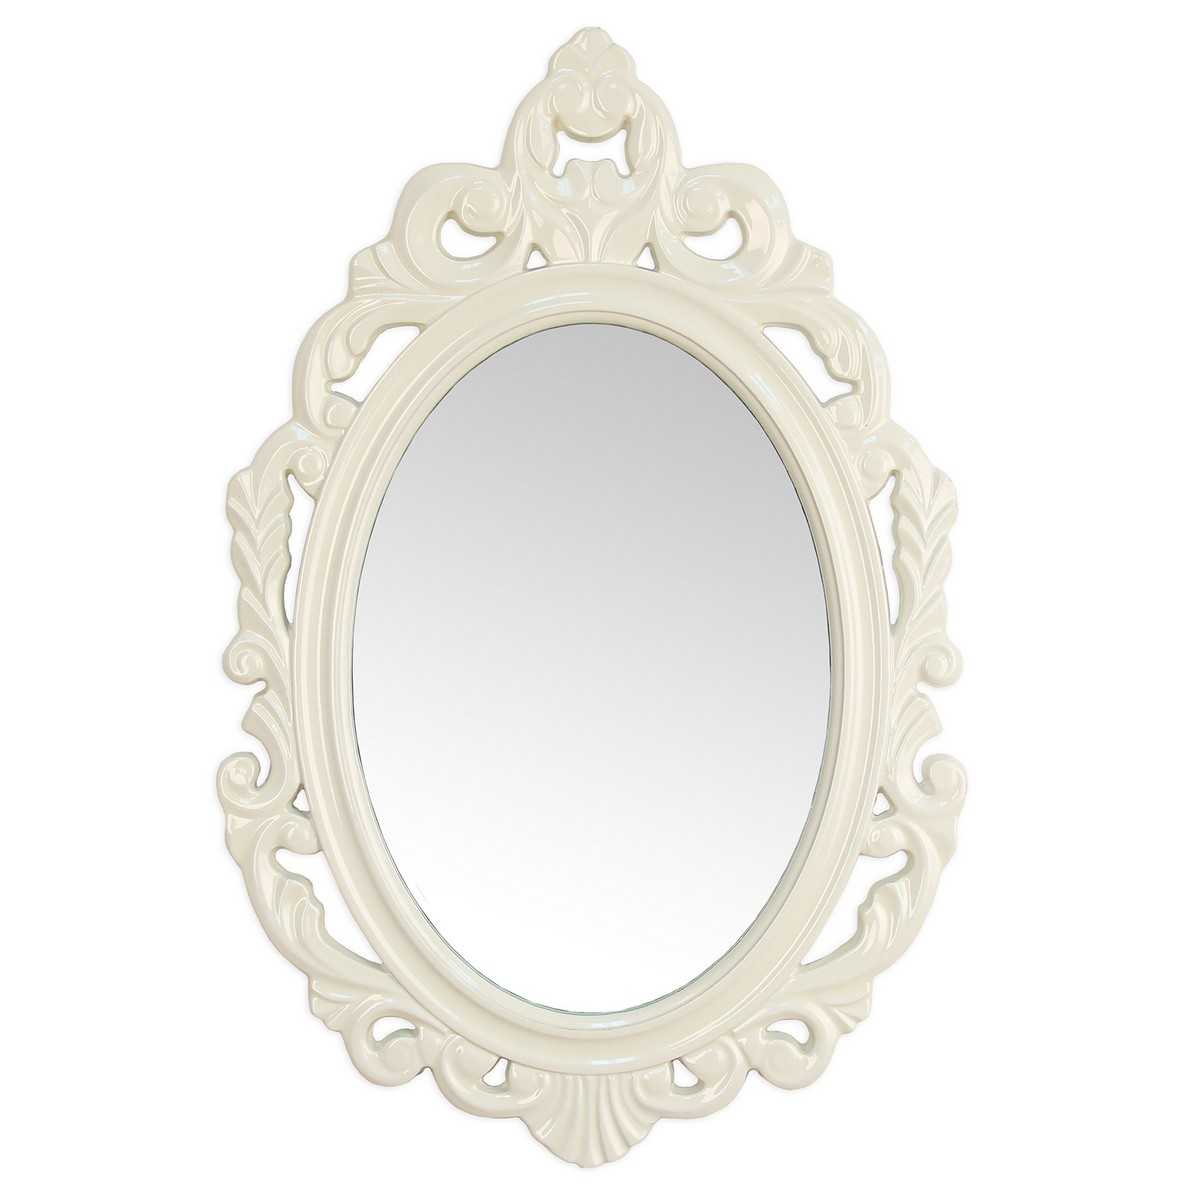 Stratton Home Decor White Baroque Mirror - White